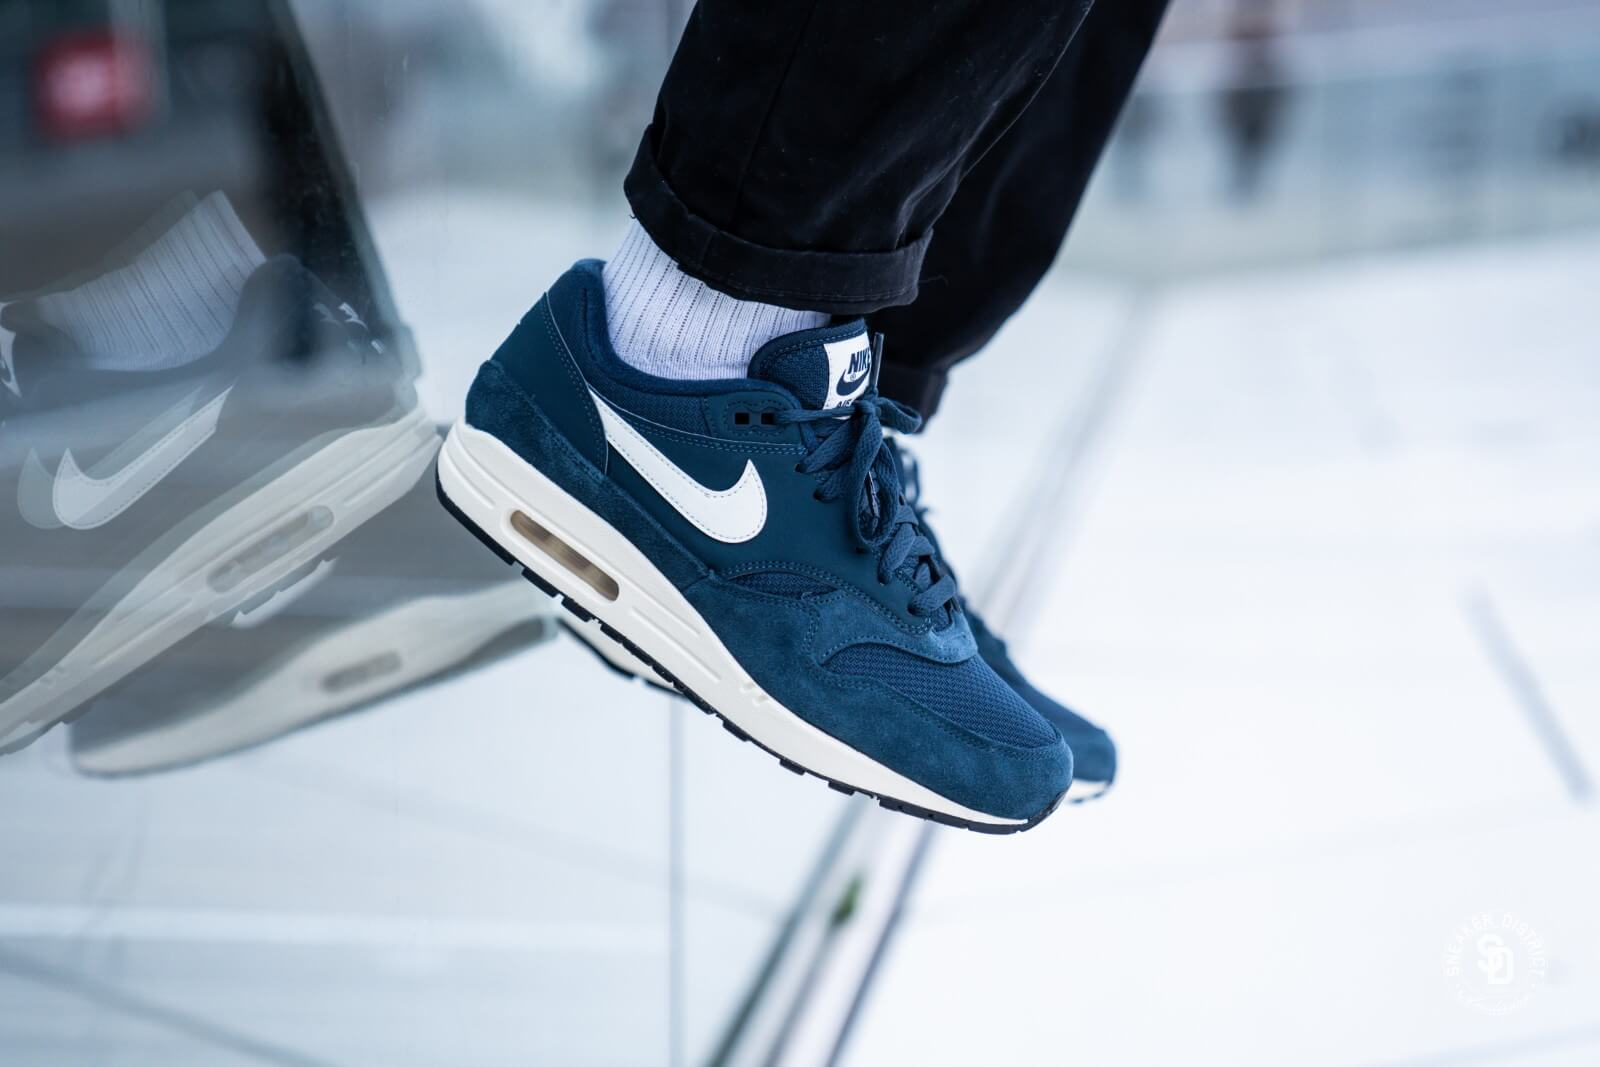 bd26165e482 Nike Air Max 1 Armory Navy Sail Black AH8145 401